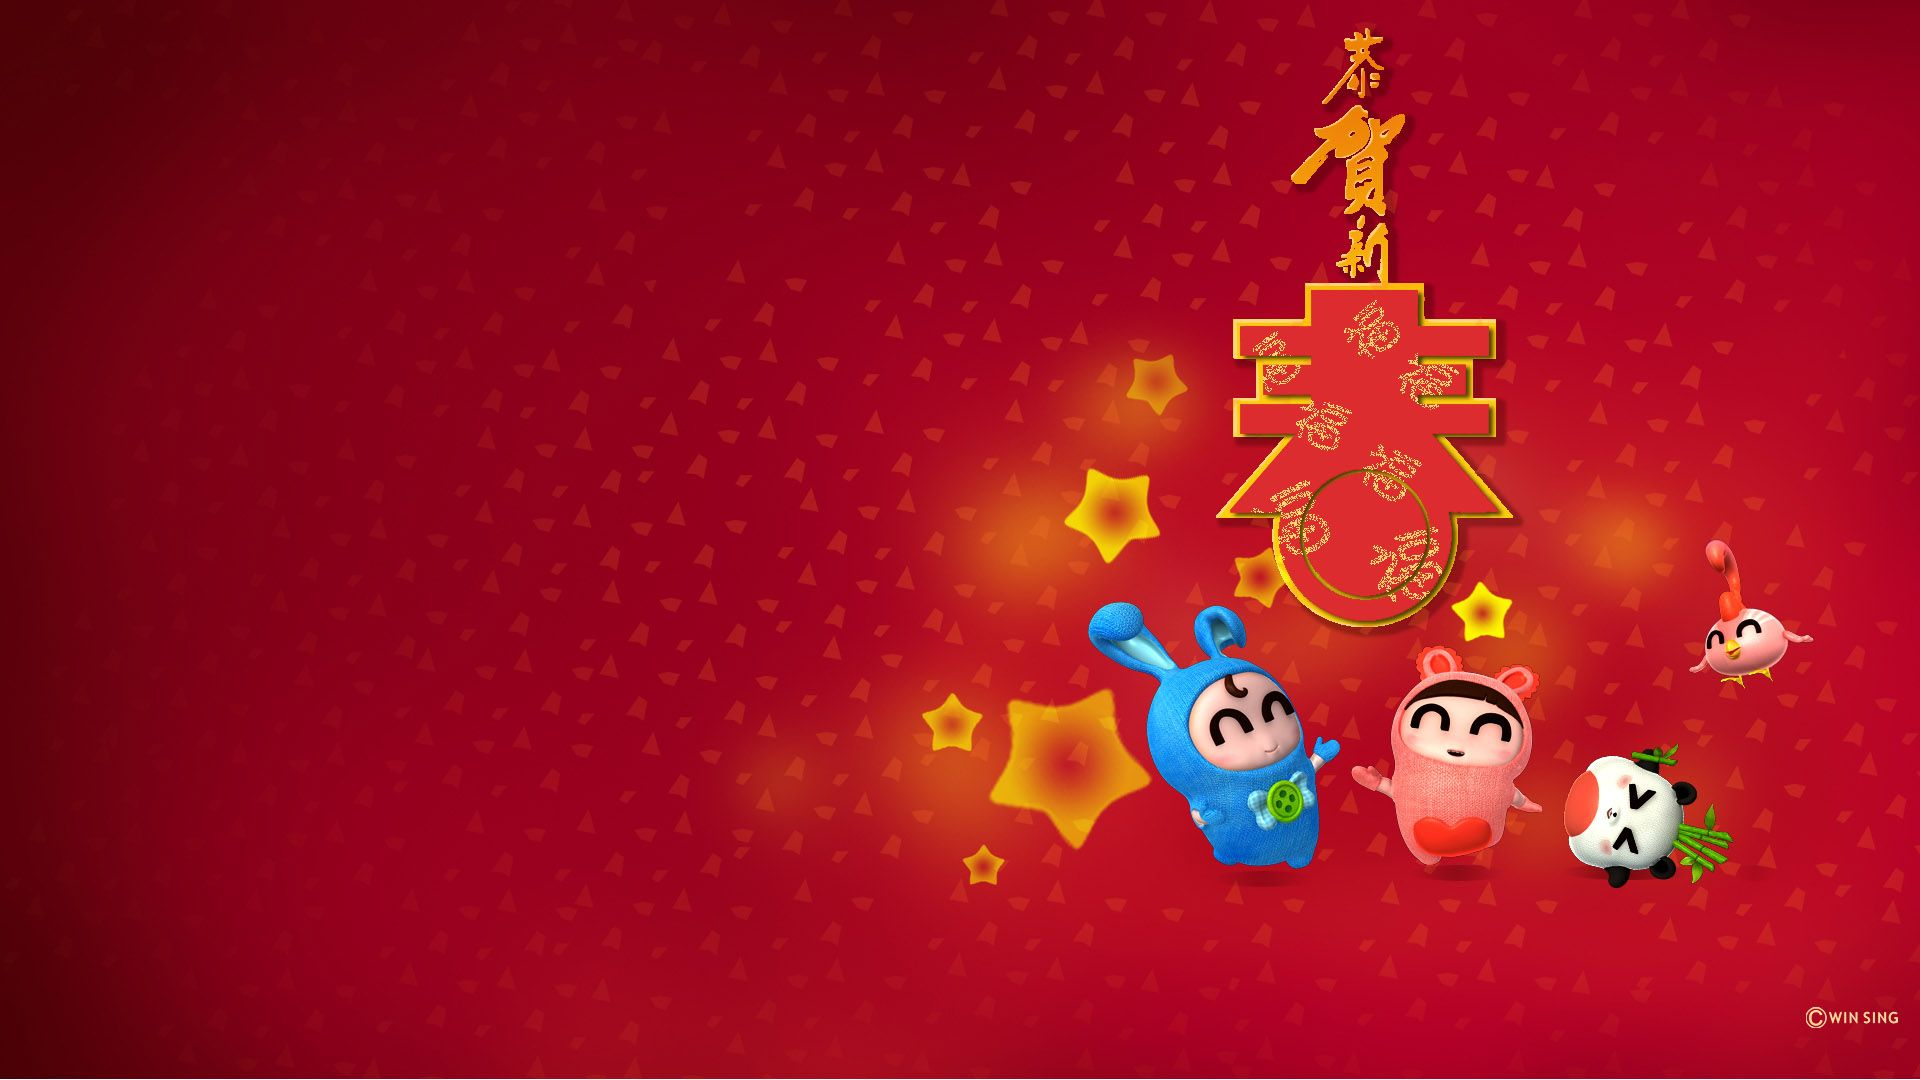 Chinese new year 2014 best wallpapers chinese new year 2014 hd voltagebd Image collections